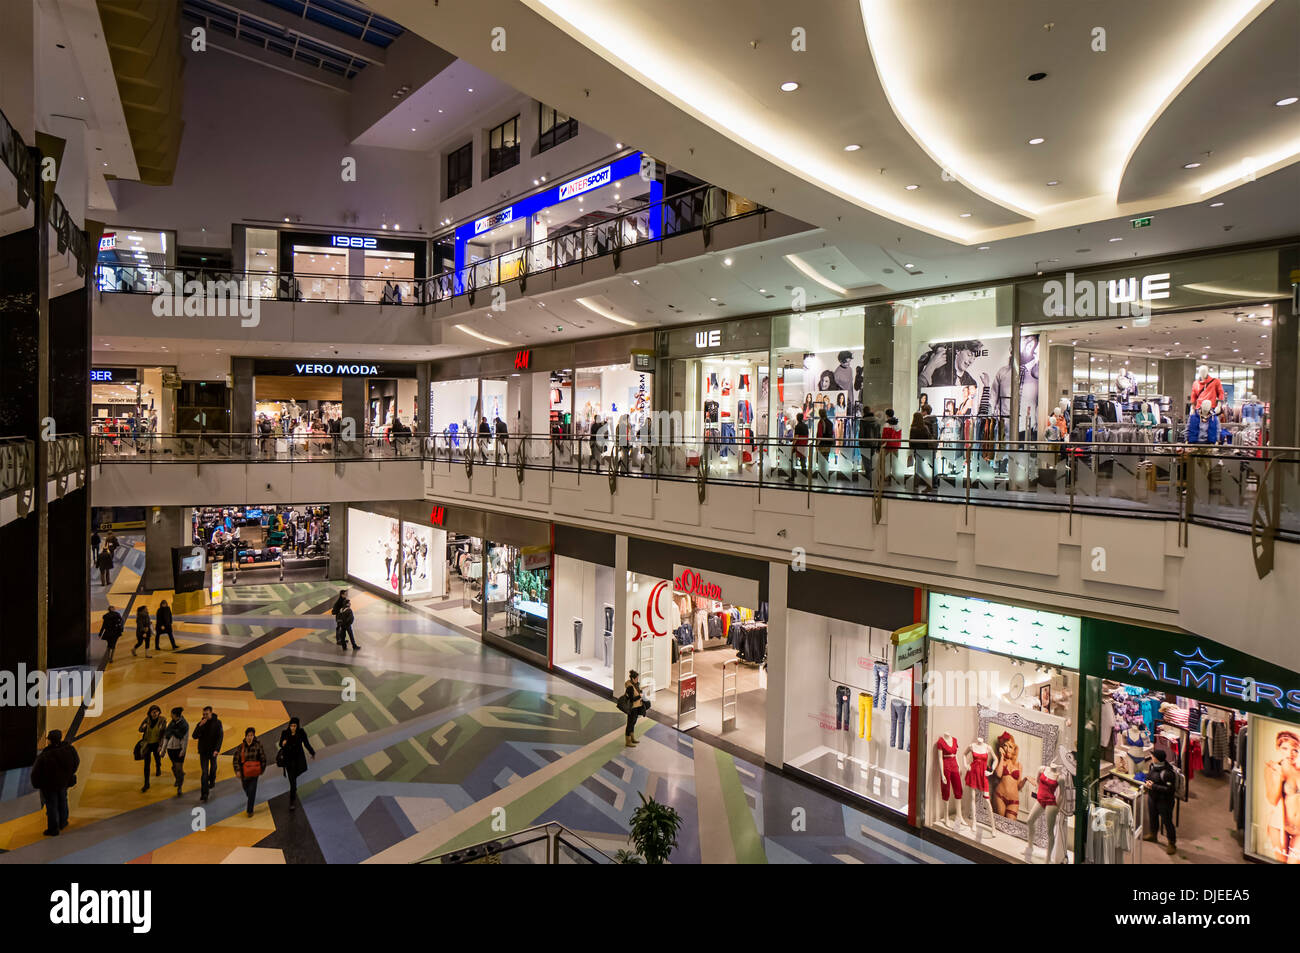 Alexa Shopping Center, Interieur, mehr als 200 Shopa, Berlin Stockbild